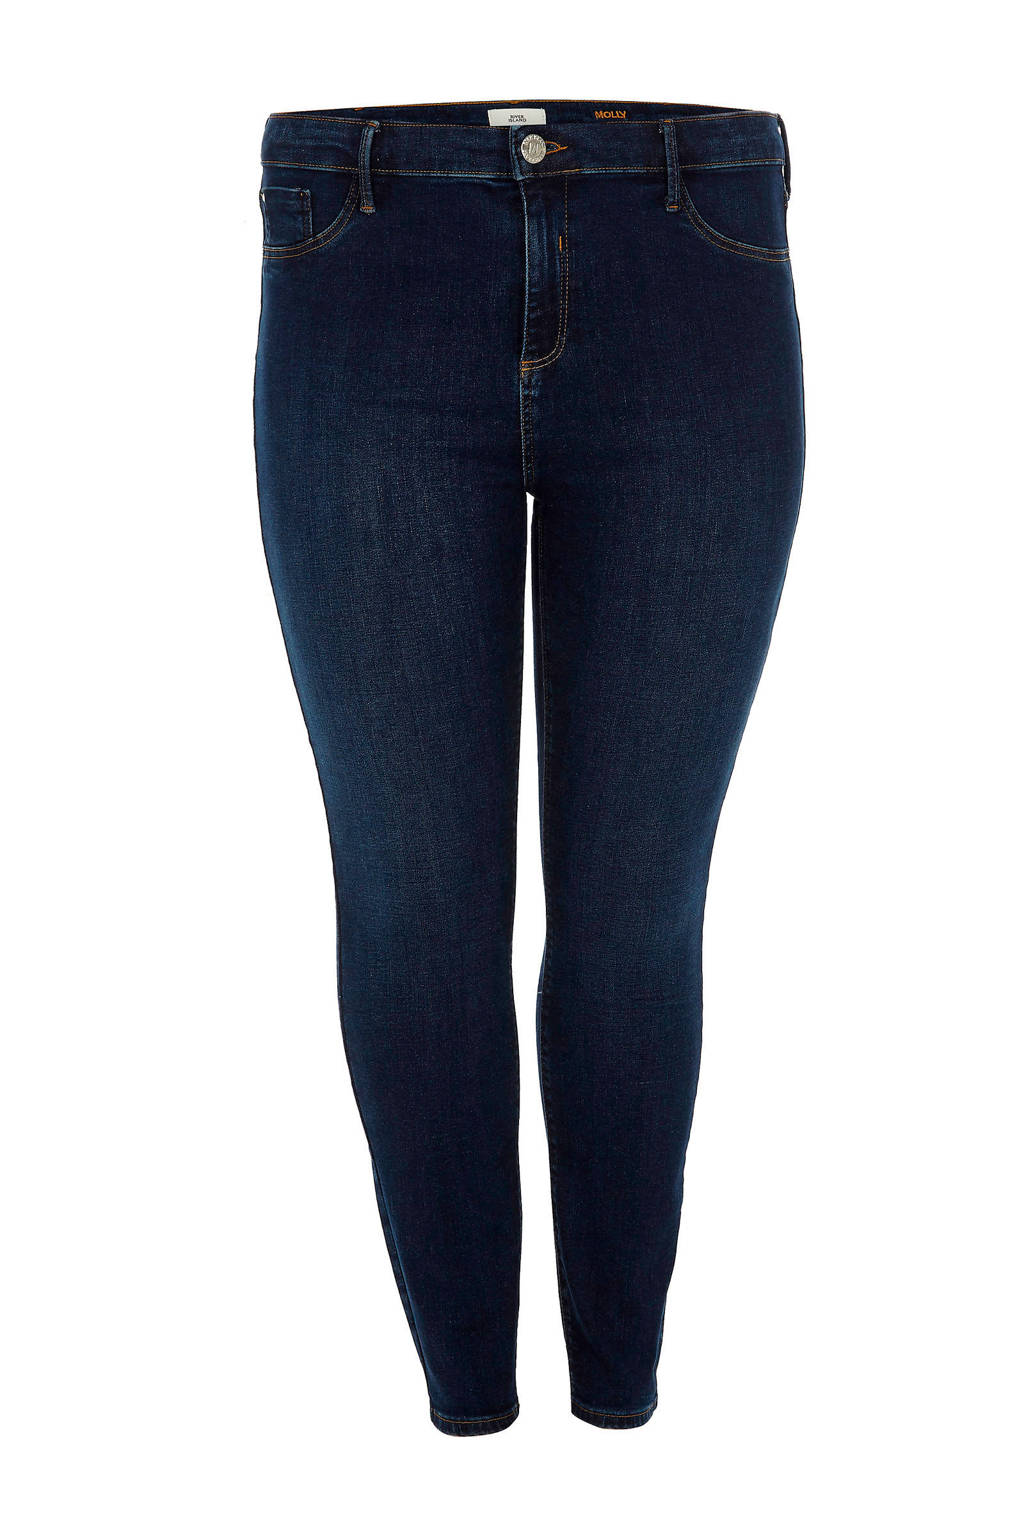 River Island Plus super skinny jegging Molly, Donkerblauw